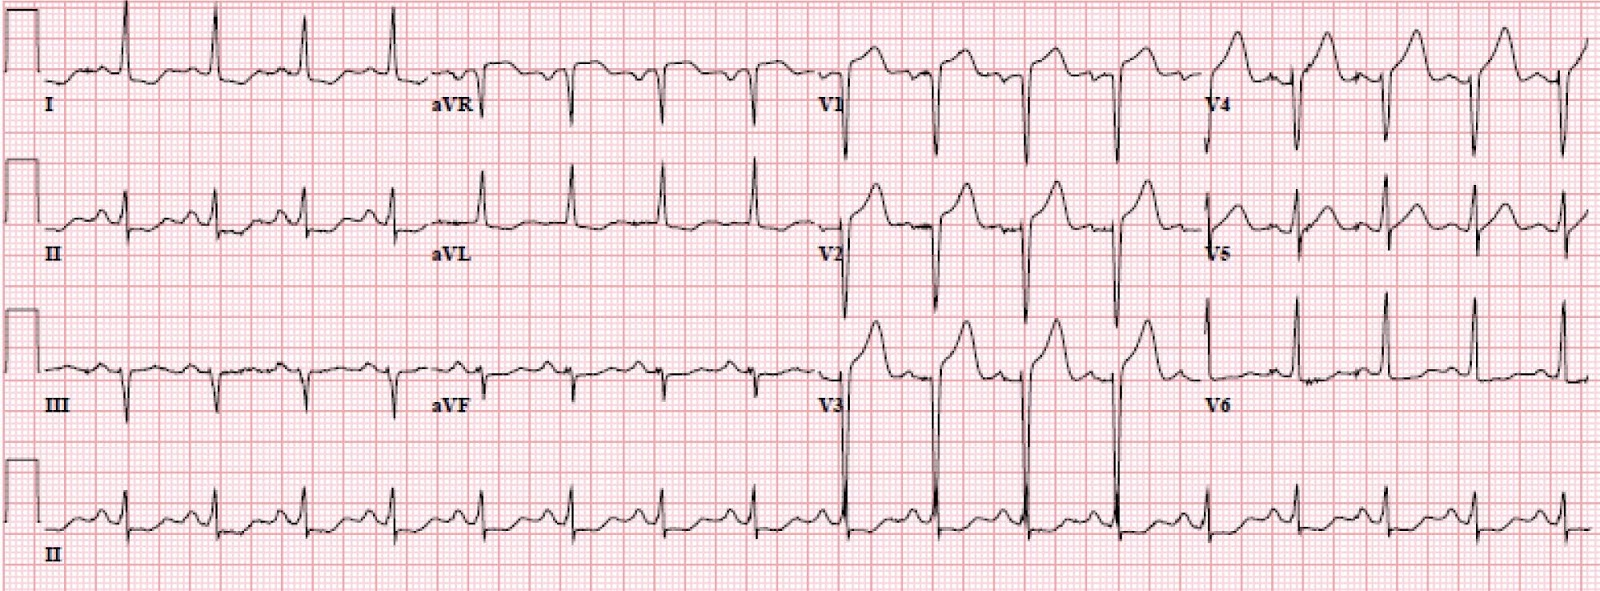 Ont Elevation Images : Dr smith s ecg lvh with anterior st elevation when